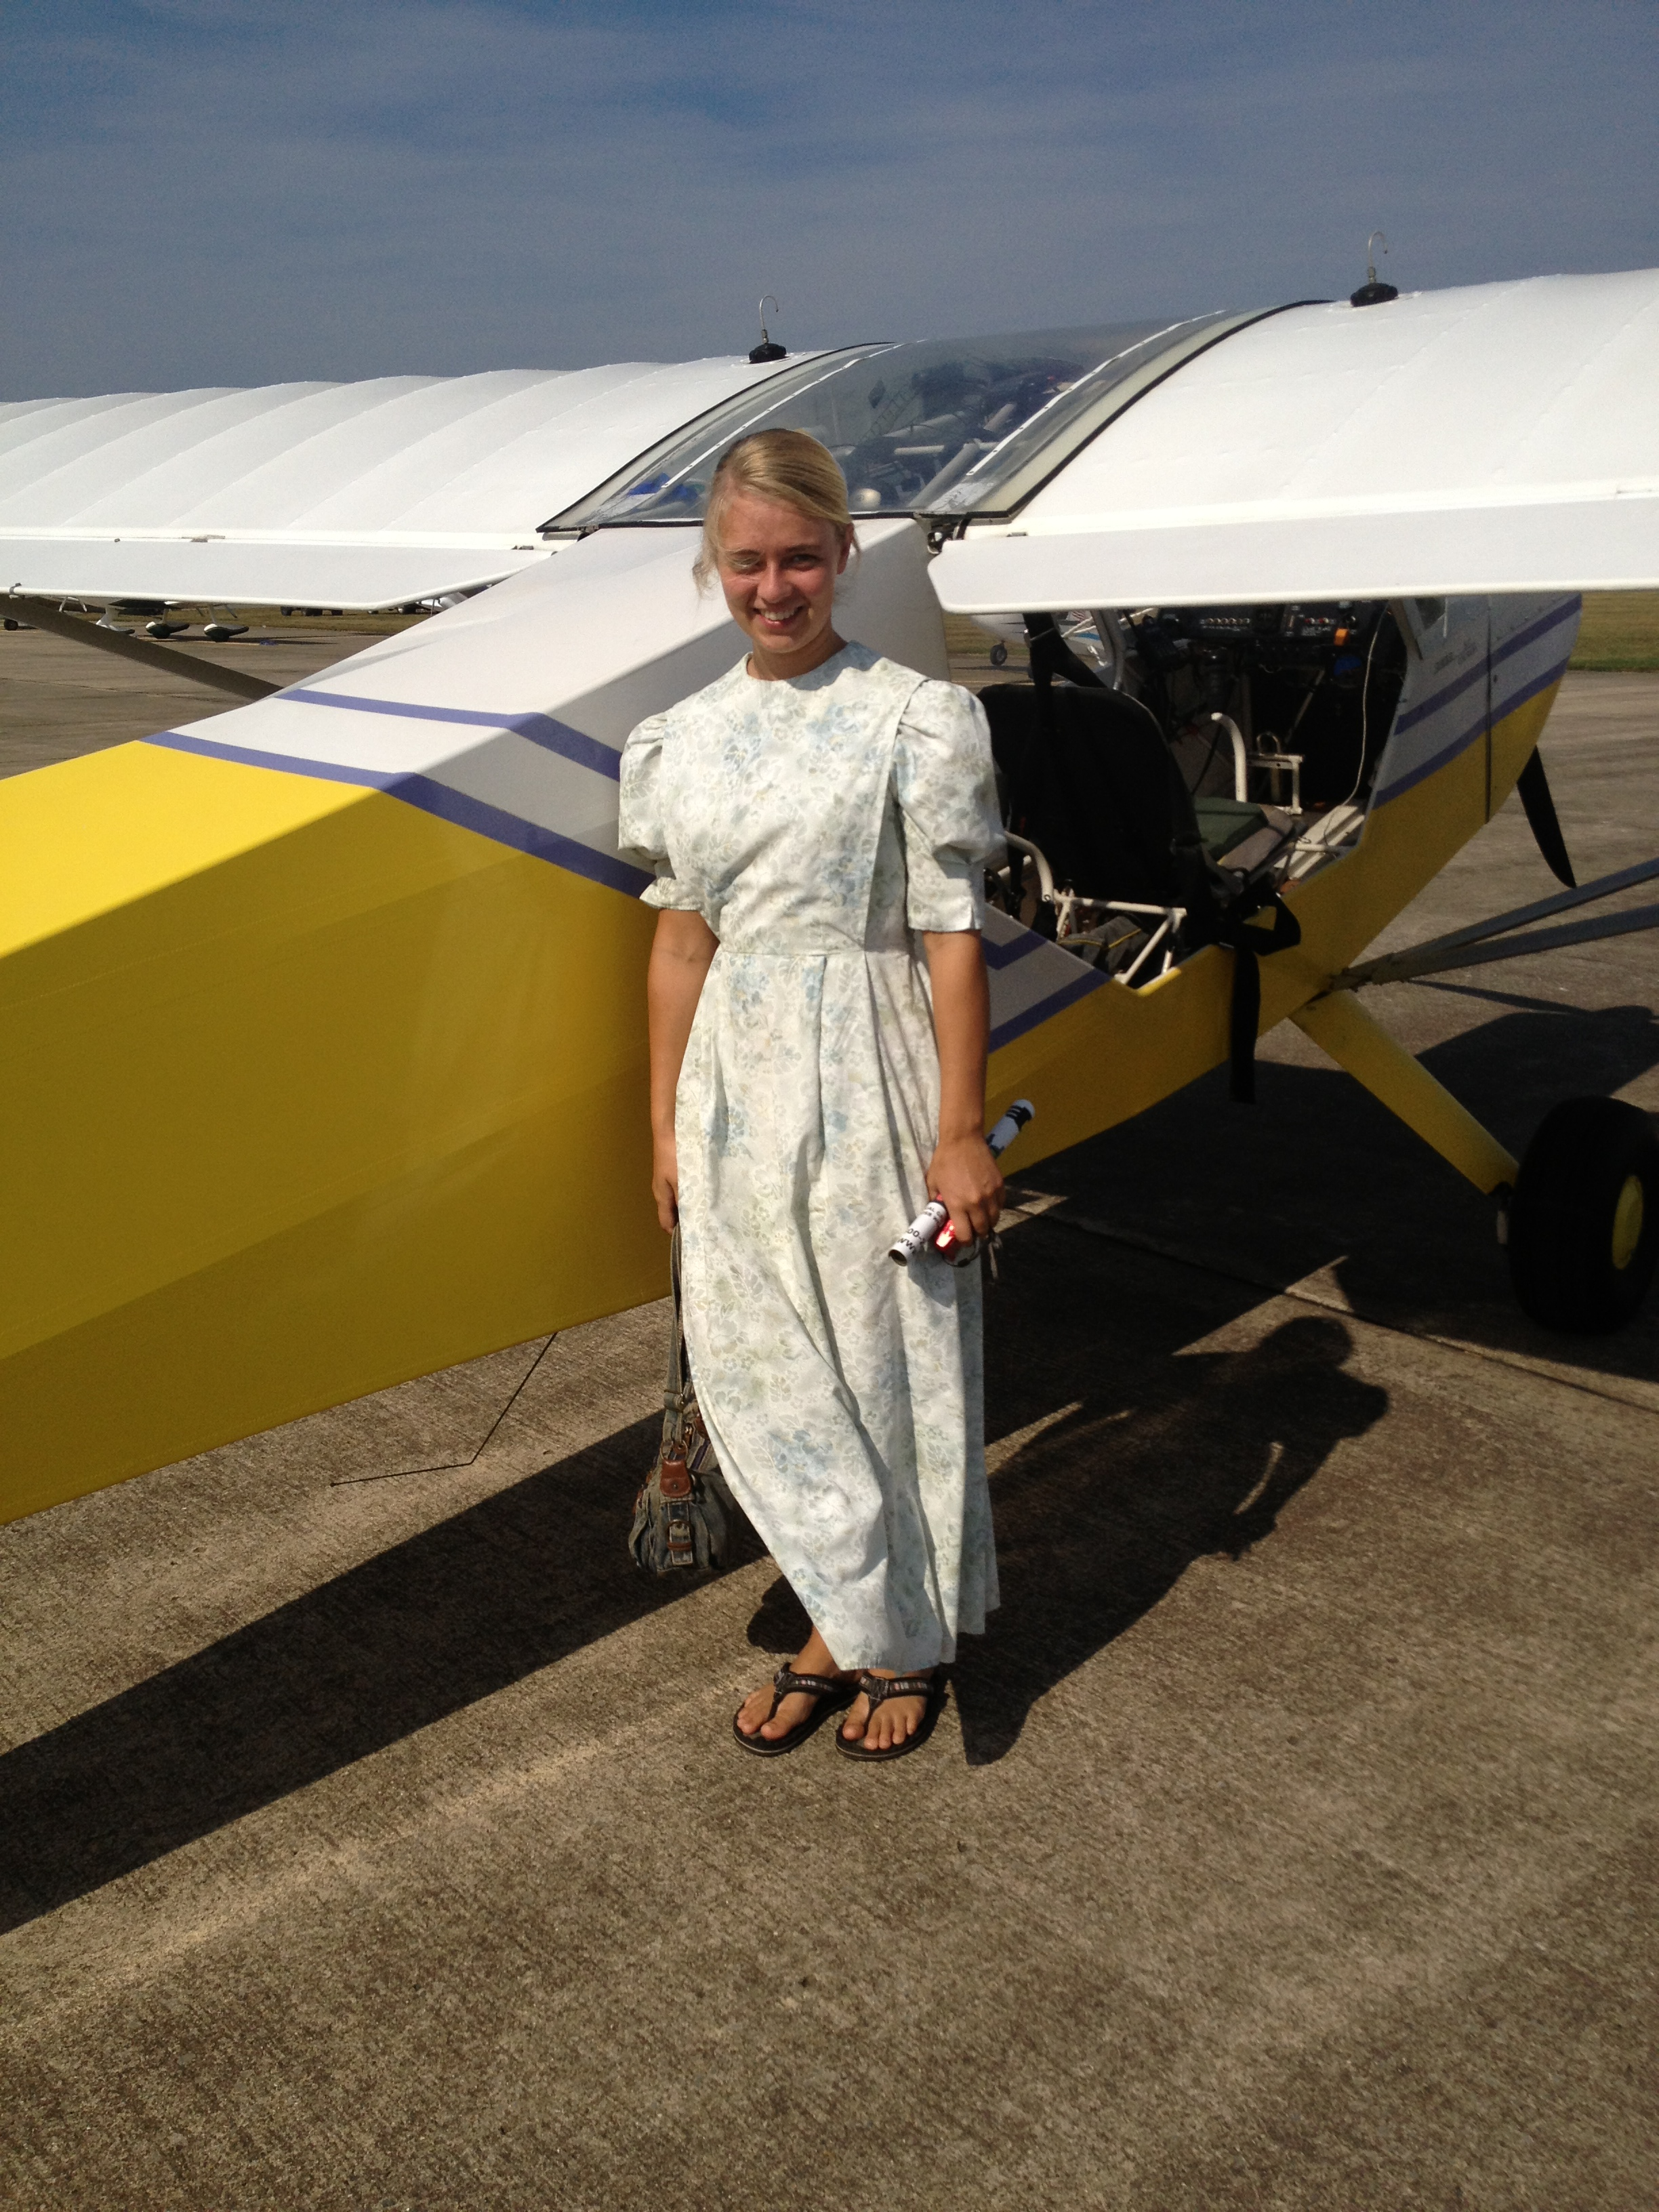 Judy's flying adventure week begins at the Midwest LSA Expo